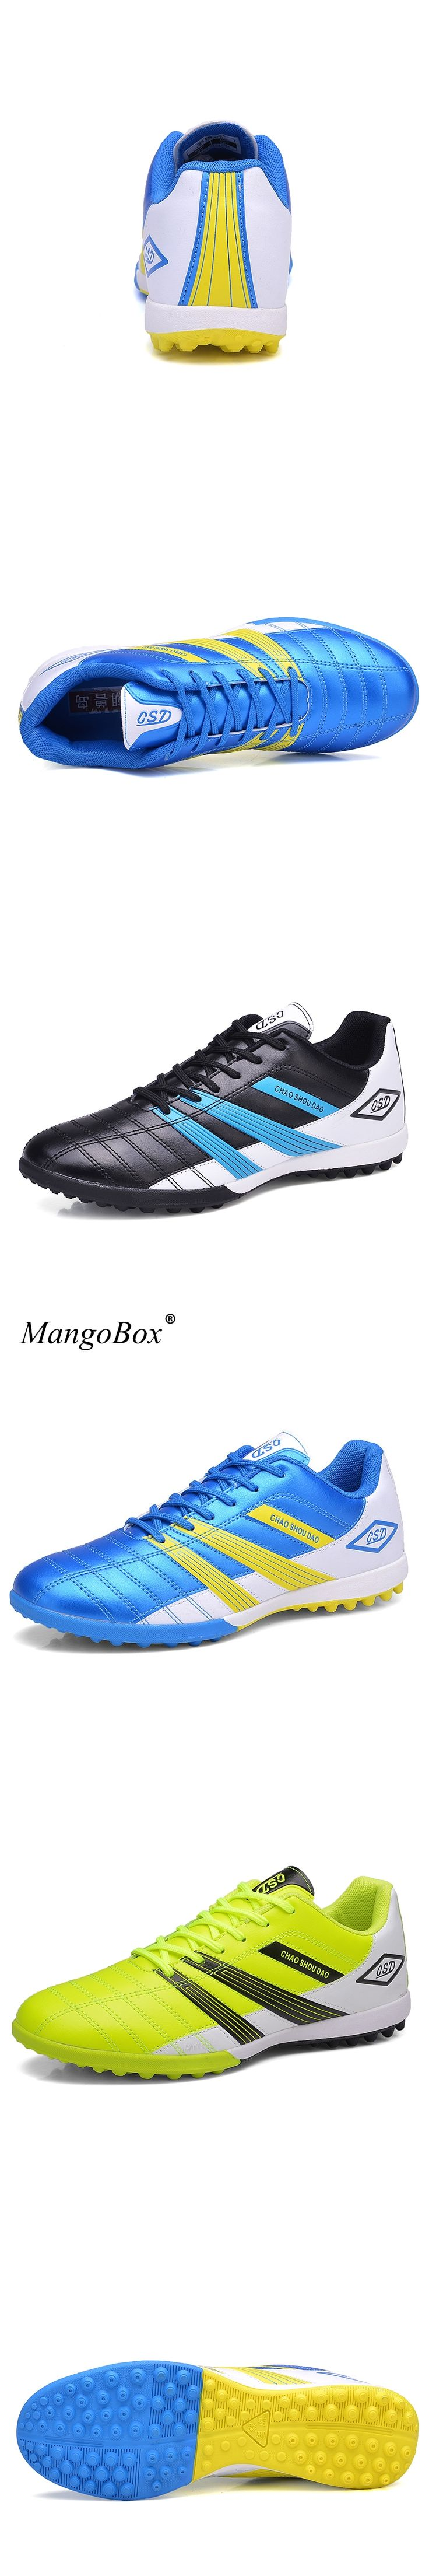 2016 Men Football Shoes Leather Football Boots For Kids Blue Professional Soccer Shoes Non-Slip Football Training Shoes